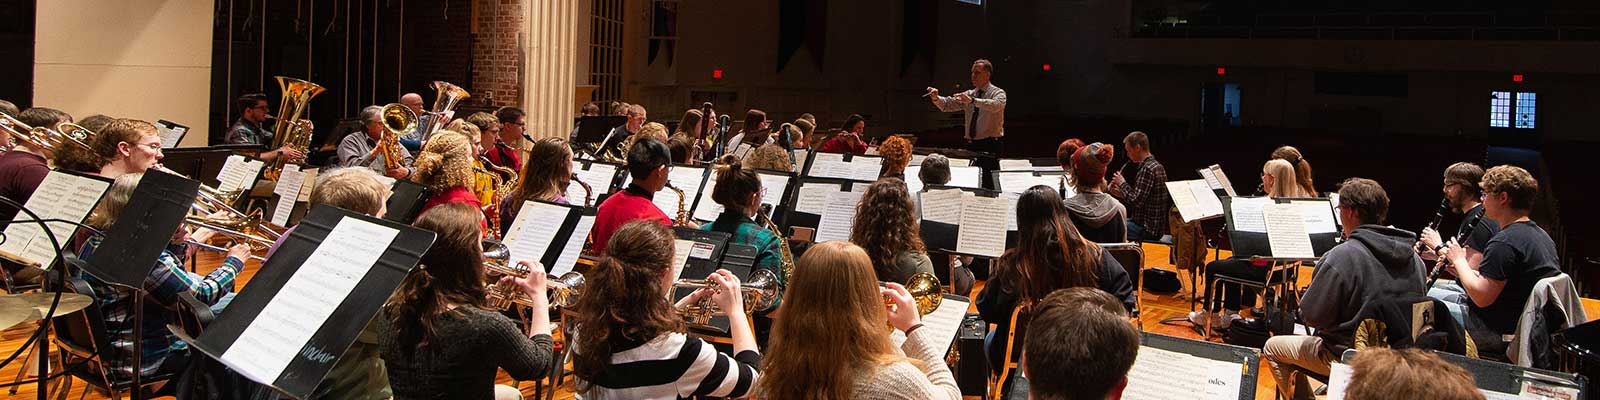 Concert Band rehearsal, conductor leading